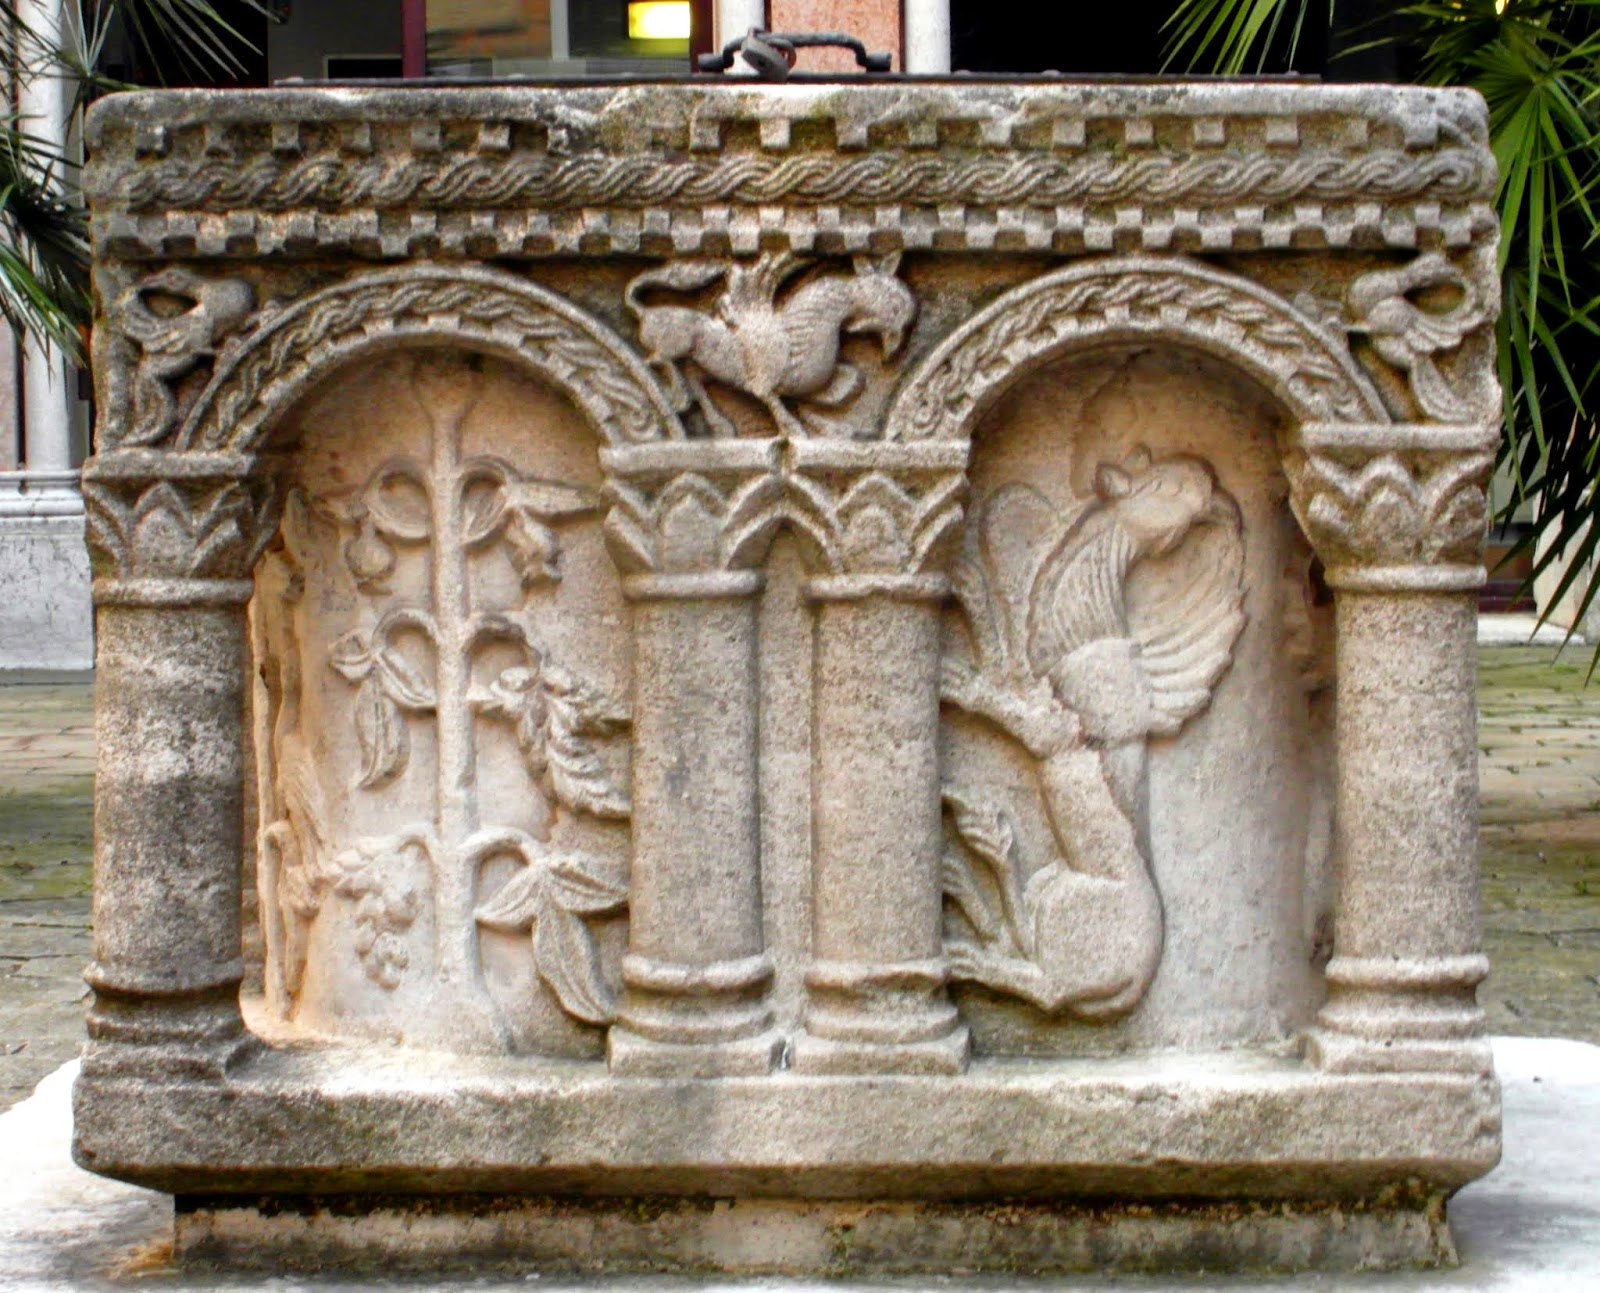 Fondaco dei Turchi (Natural History Museum), 11th century. One of the oldest surviving well-heads in Venice.